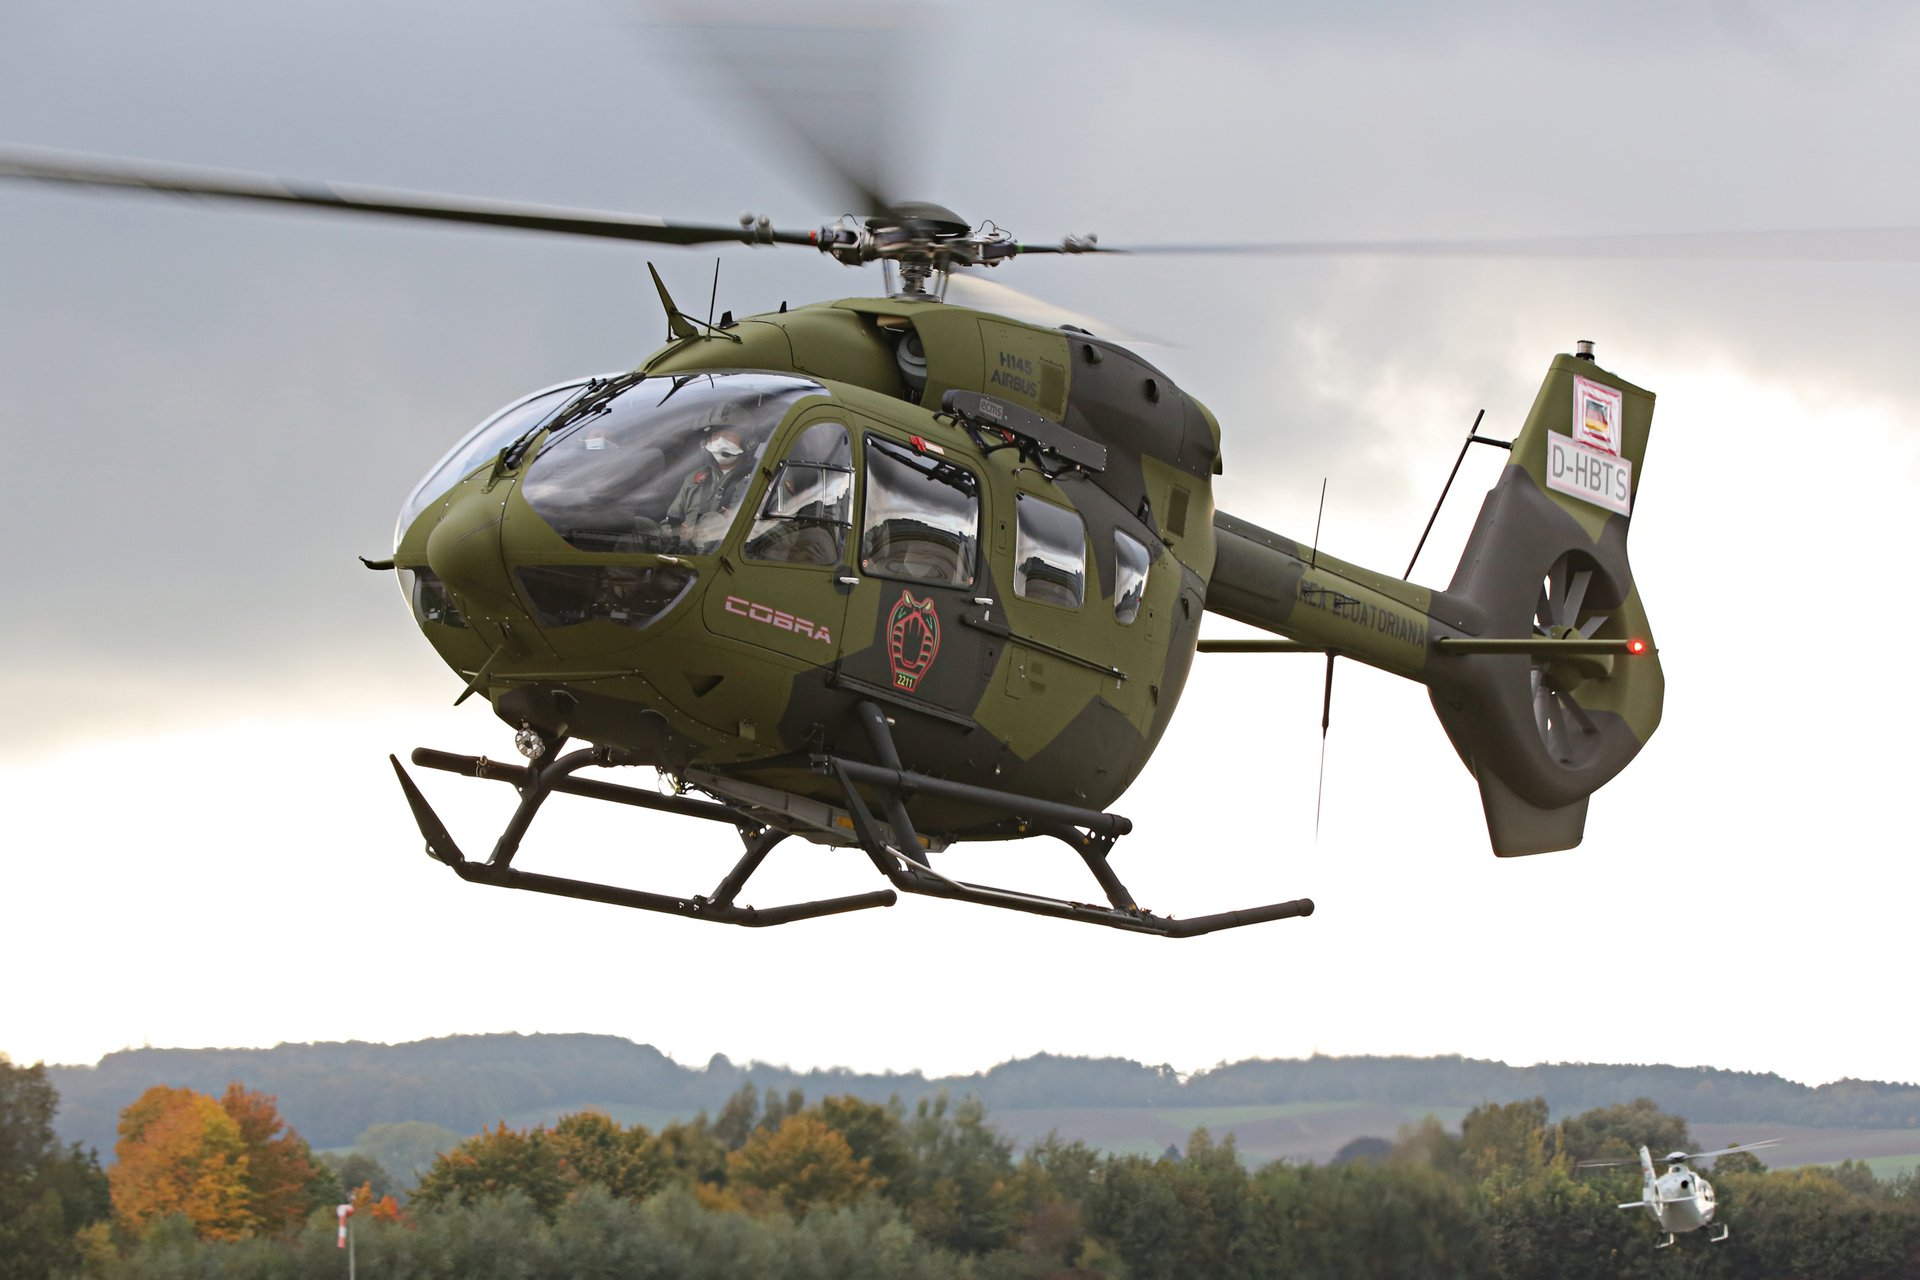 "The Ecuadorian Air Force's first two H145 rotorcraft – known as ""Cobra"" in the Ecuadorian Air Force – were delivered by Airbus Helicopters in October 2020; they will be deployed for national security missions, high-altitude rescue operations, medical evacuations, and disaster relief"